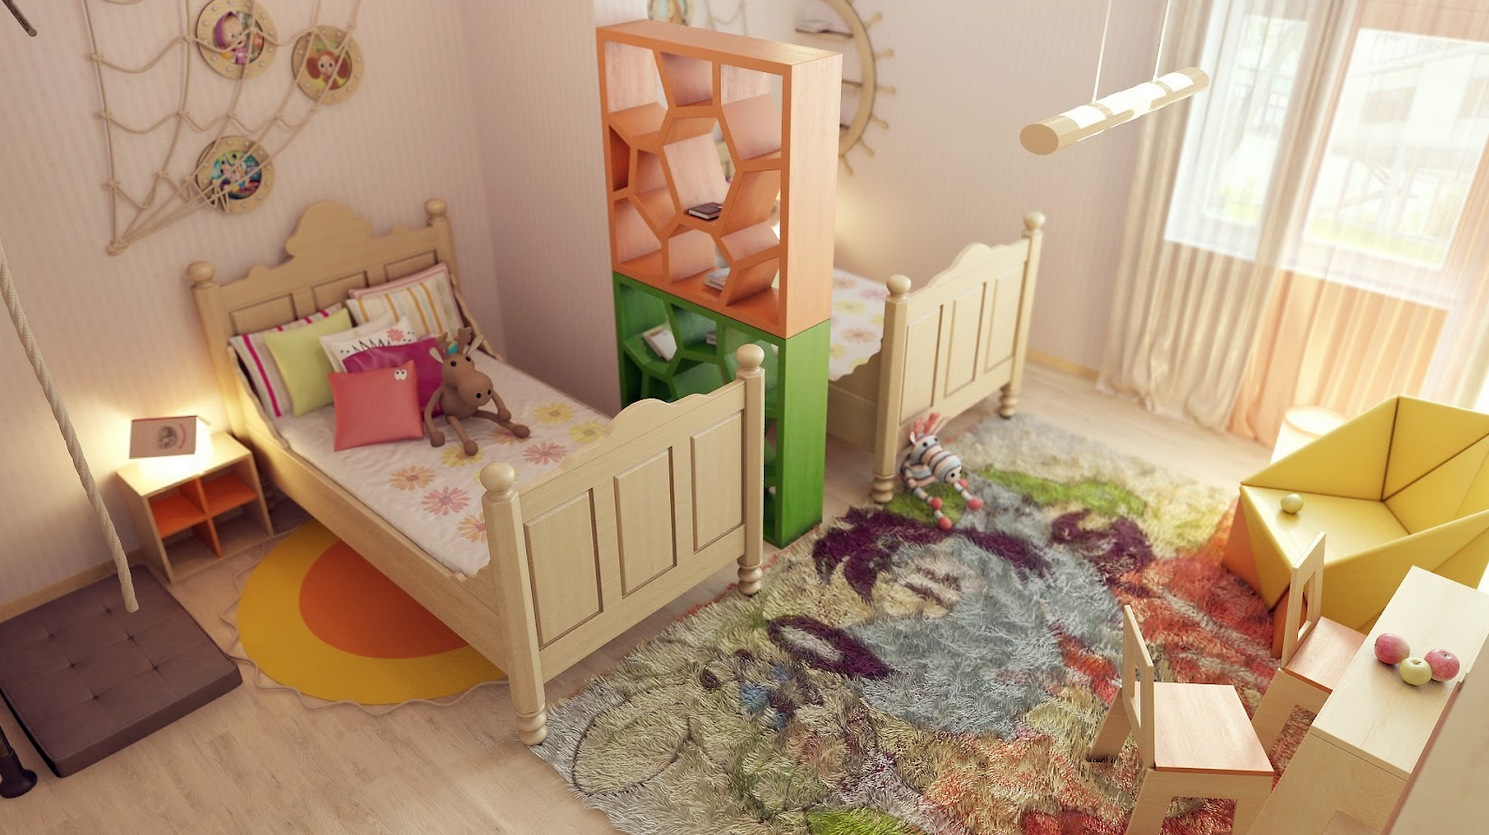 shared childrens room divider idea